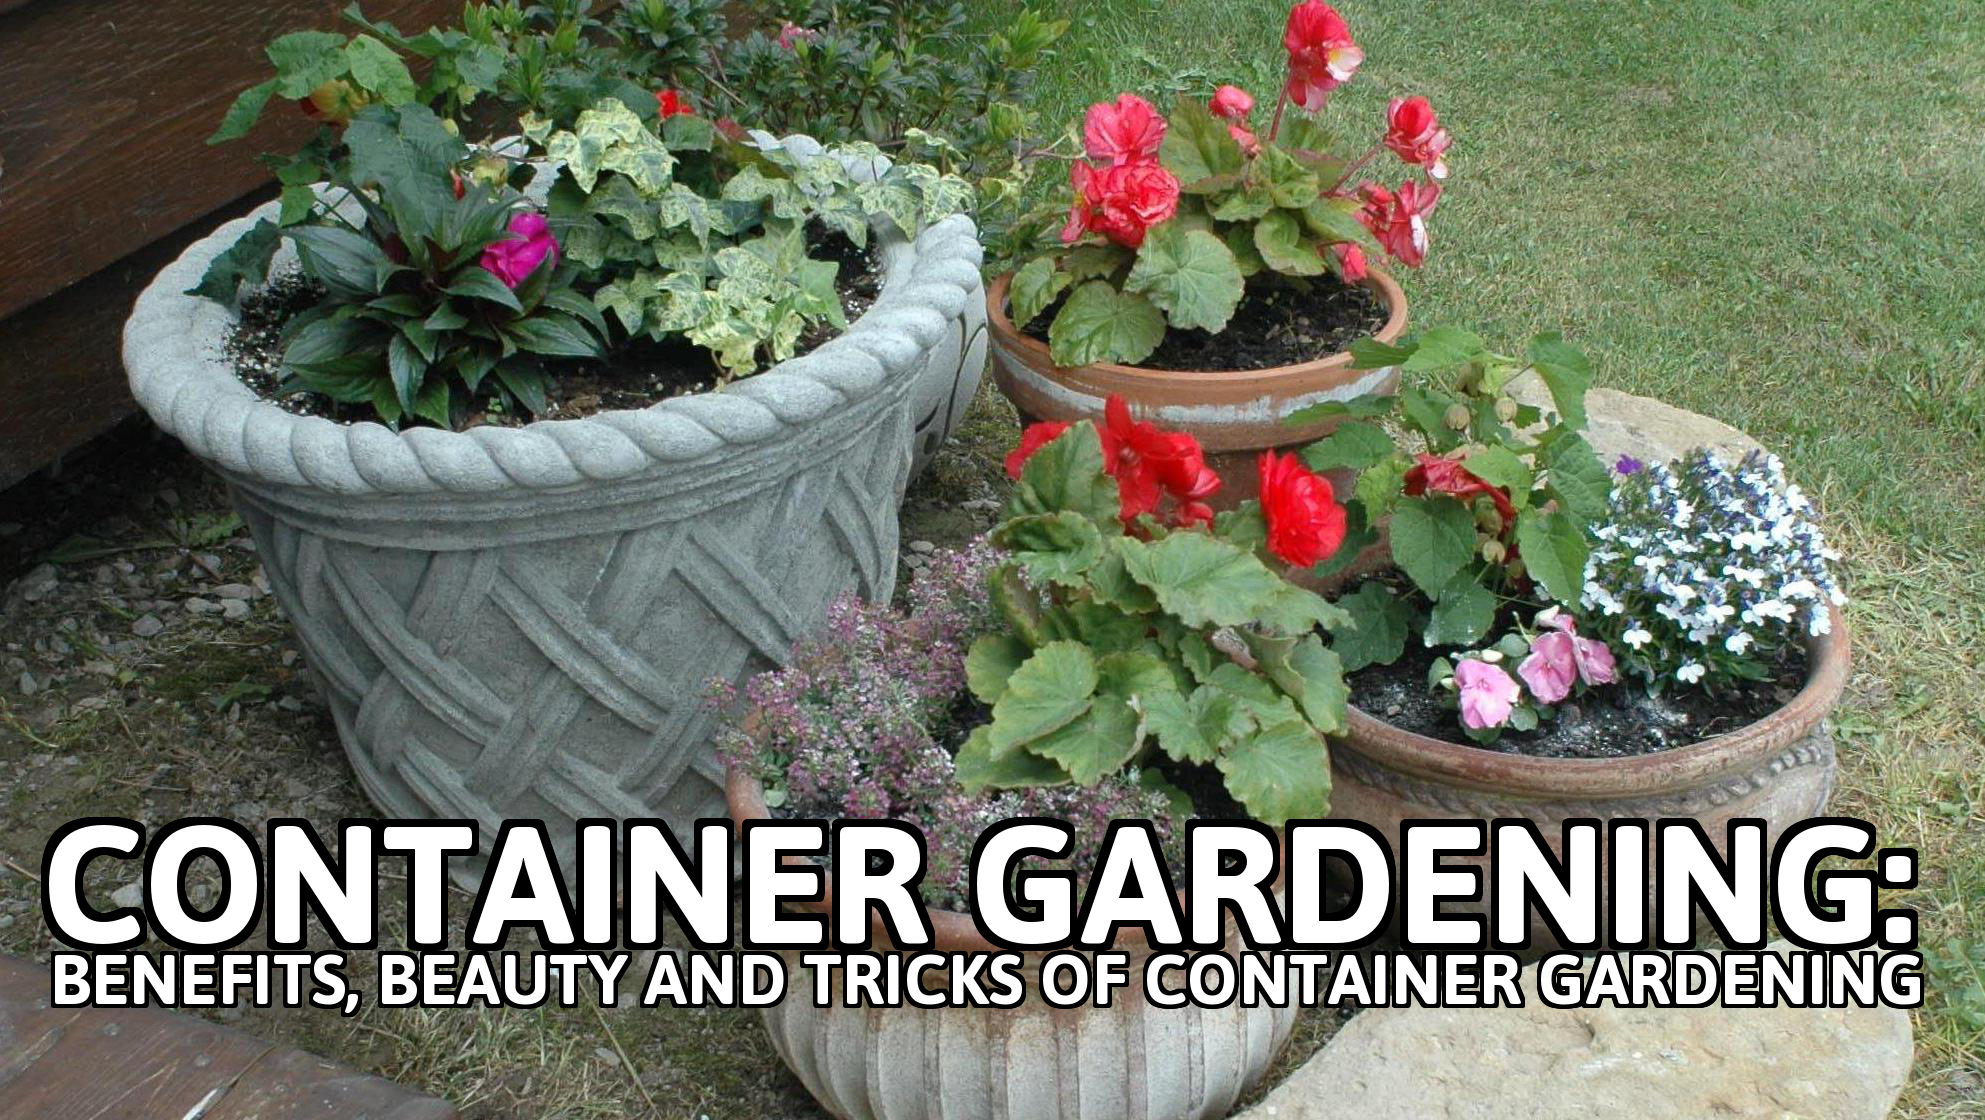 #Container #Gardening Is All About Using #Flower #Pots, #Planters And